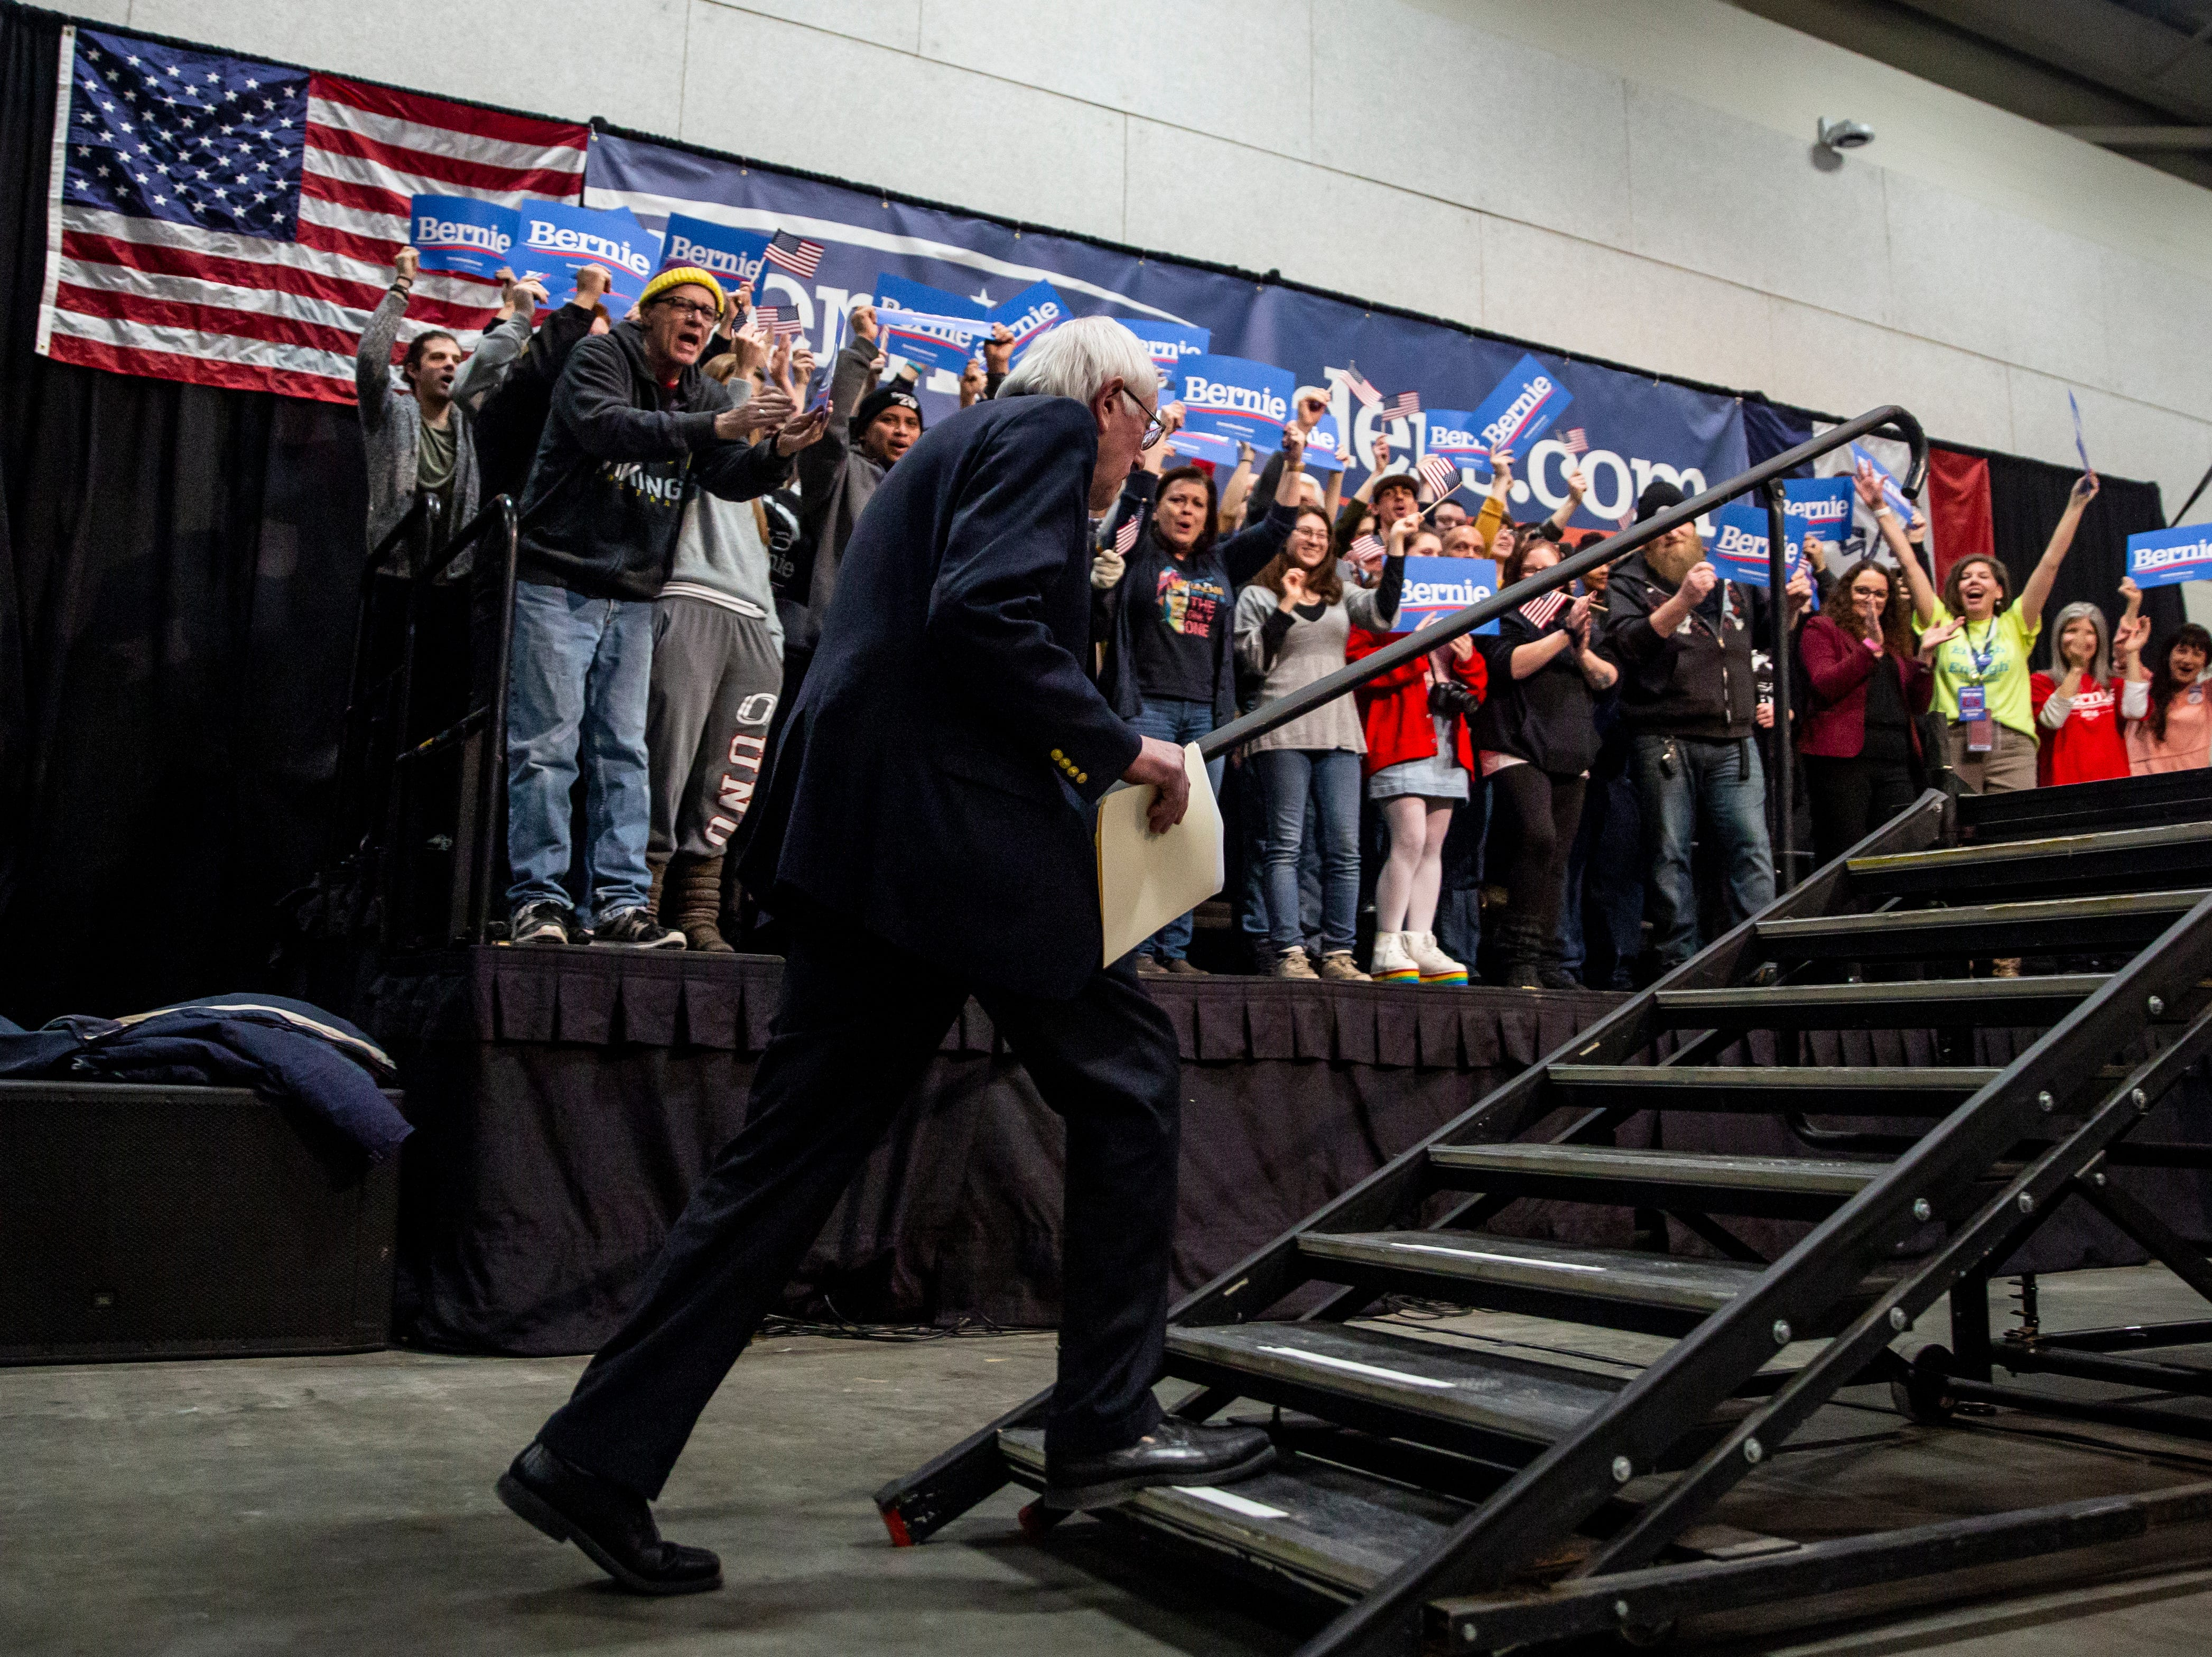 Sen. Bernie Sanders, I-VT, takes the stage during his first rally in Iowa after announcing he'll run for president for the second time, on Thursday, March 7, 2019, in Council Bluffs.